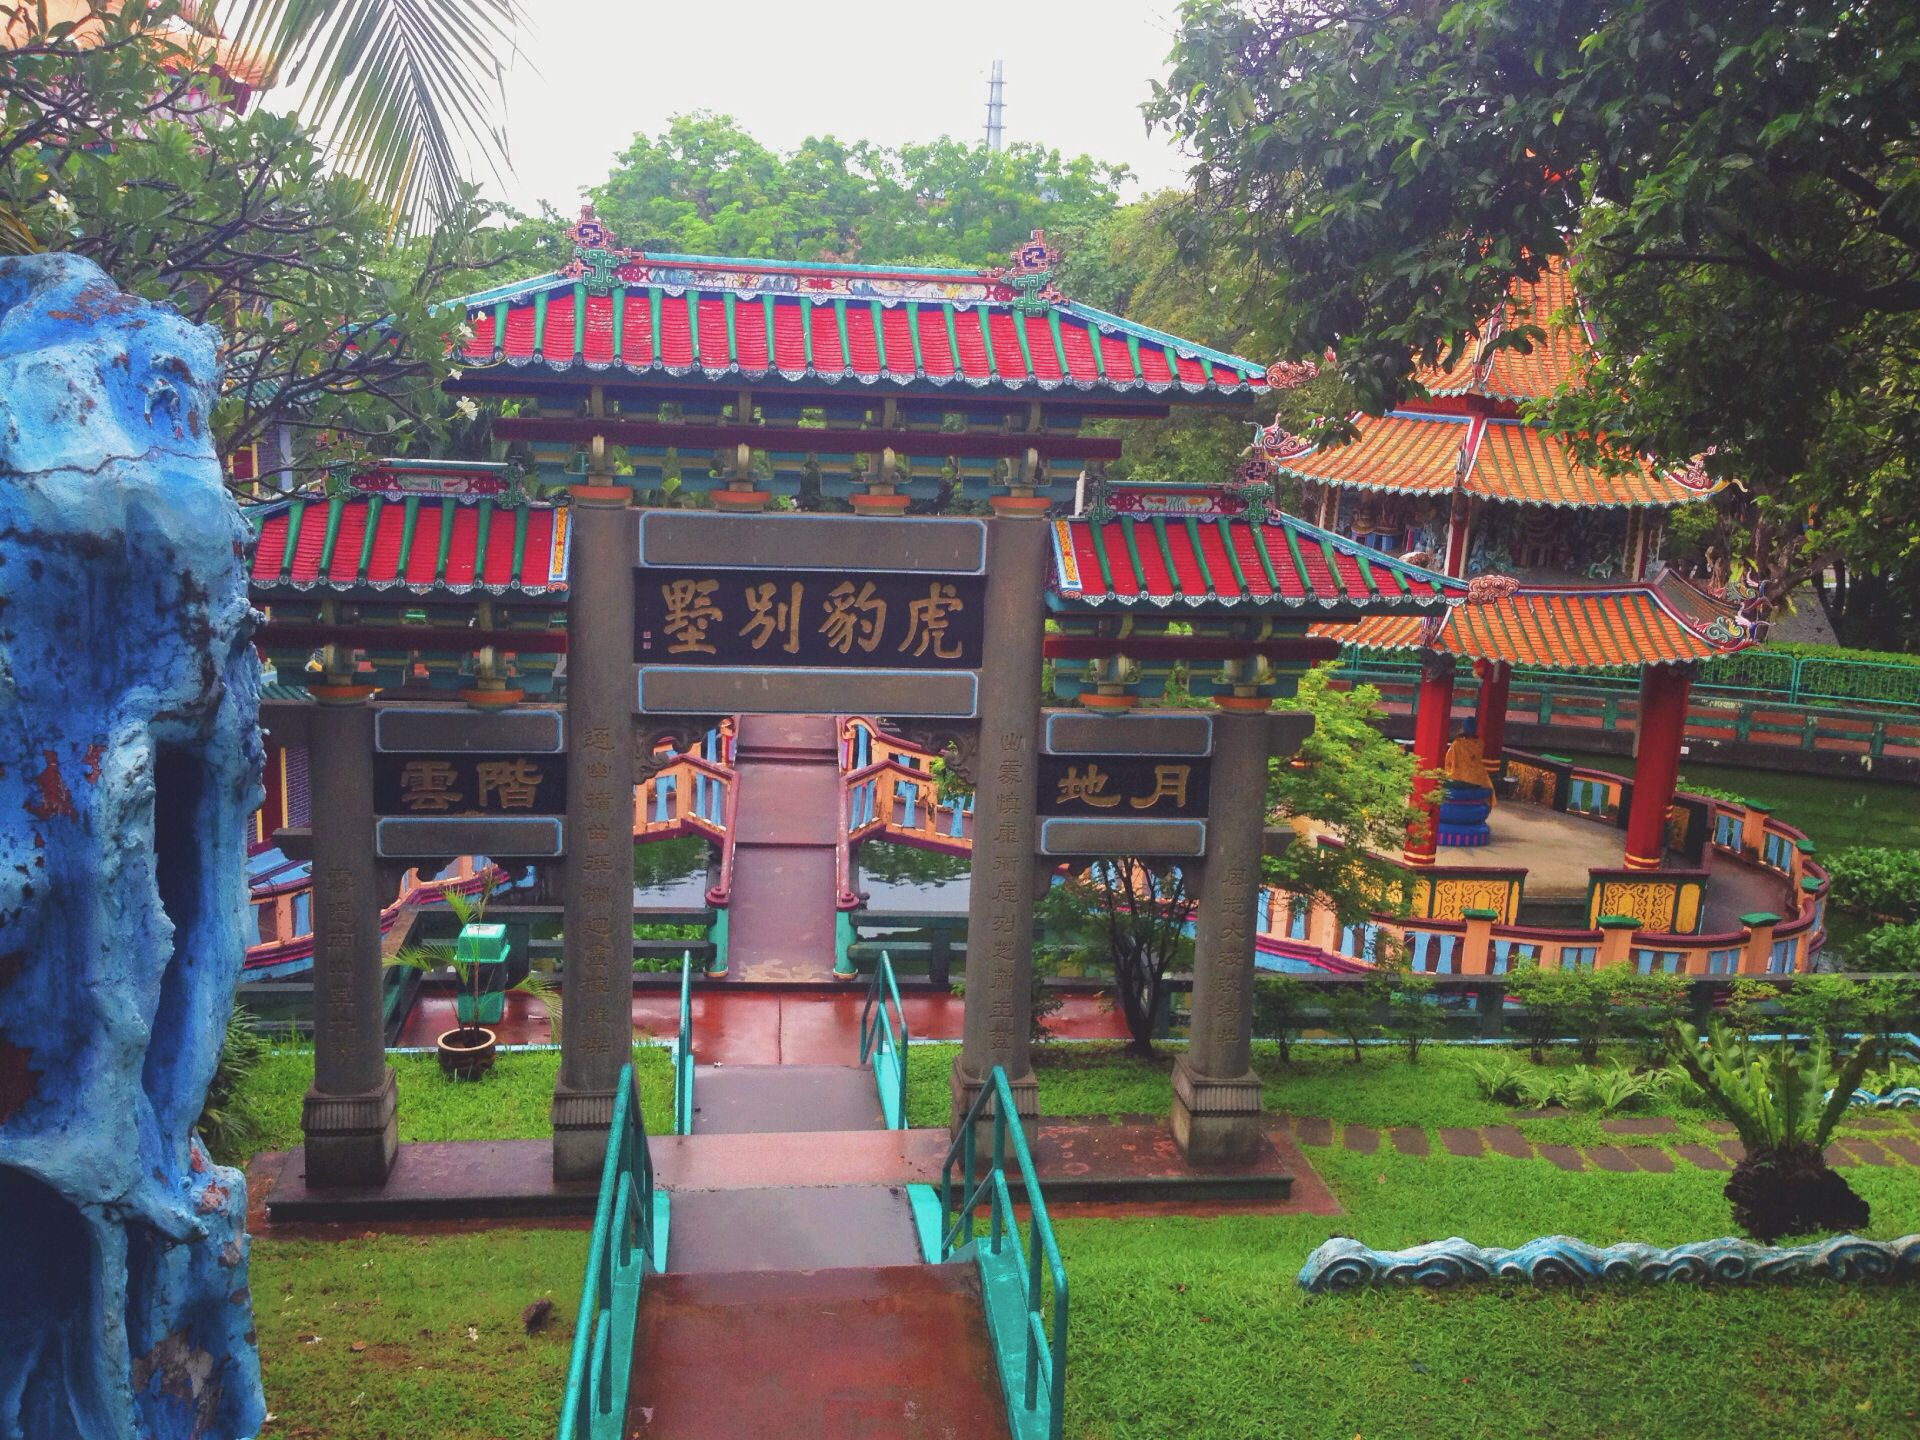 Haw par villa-singapore So vibrant with colors and chinese culture